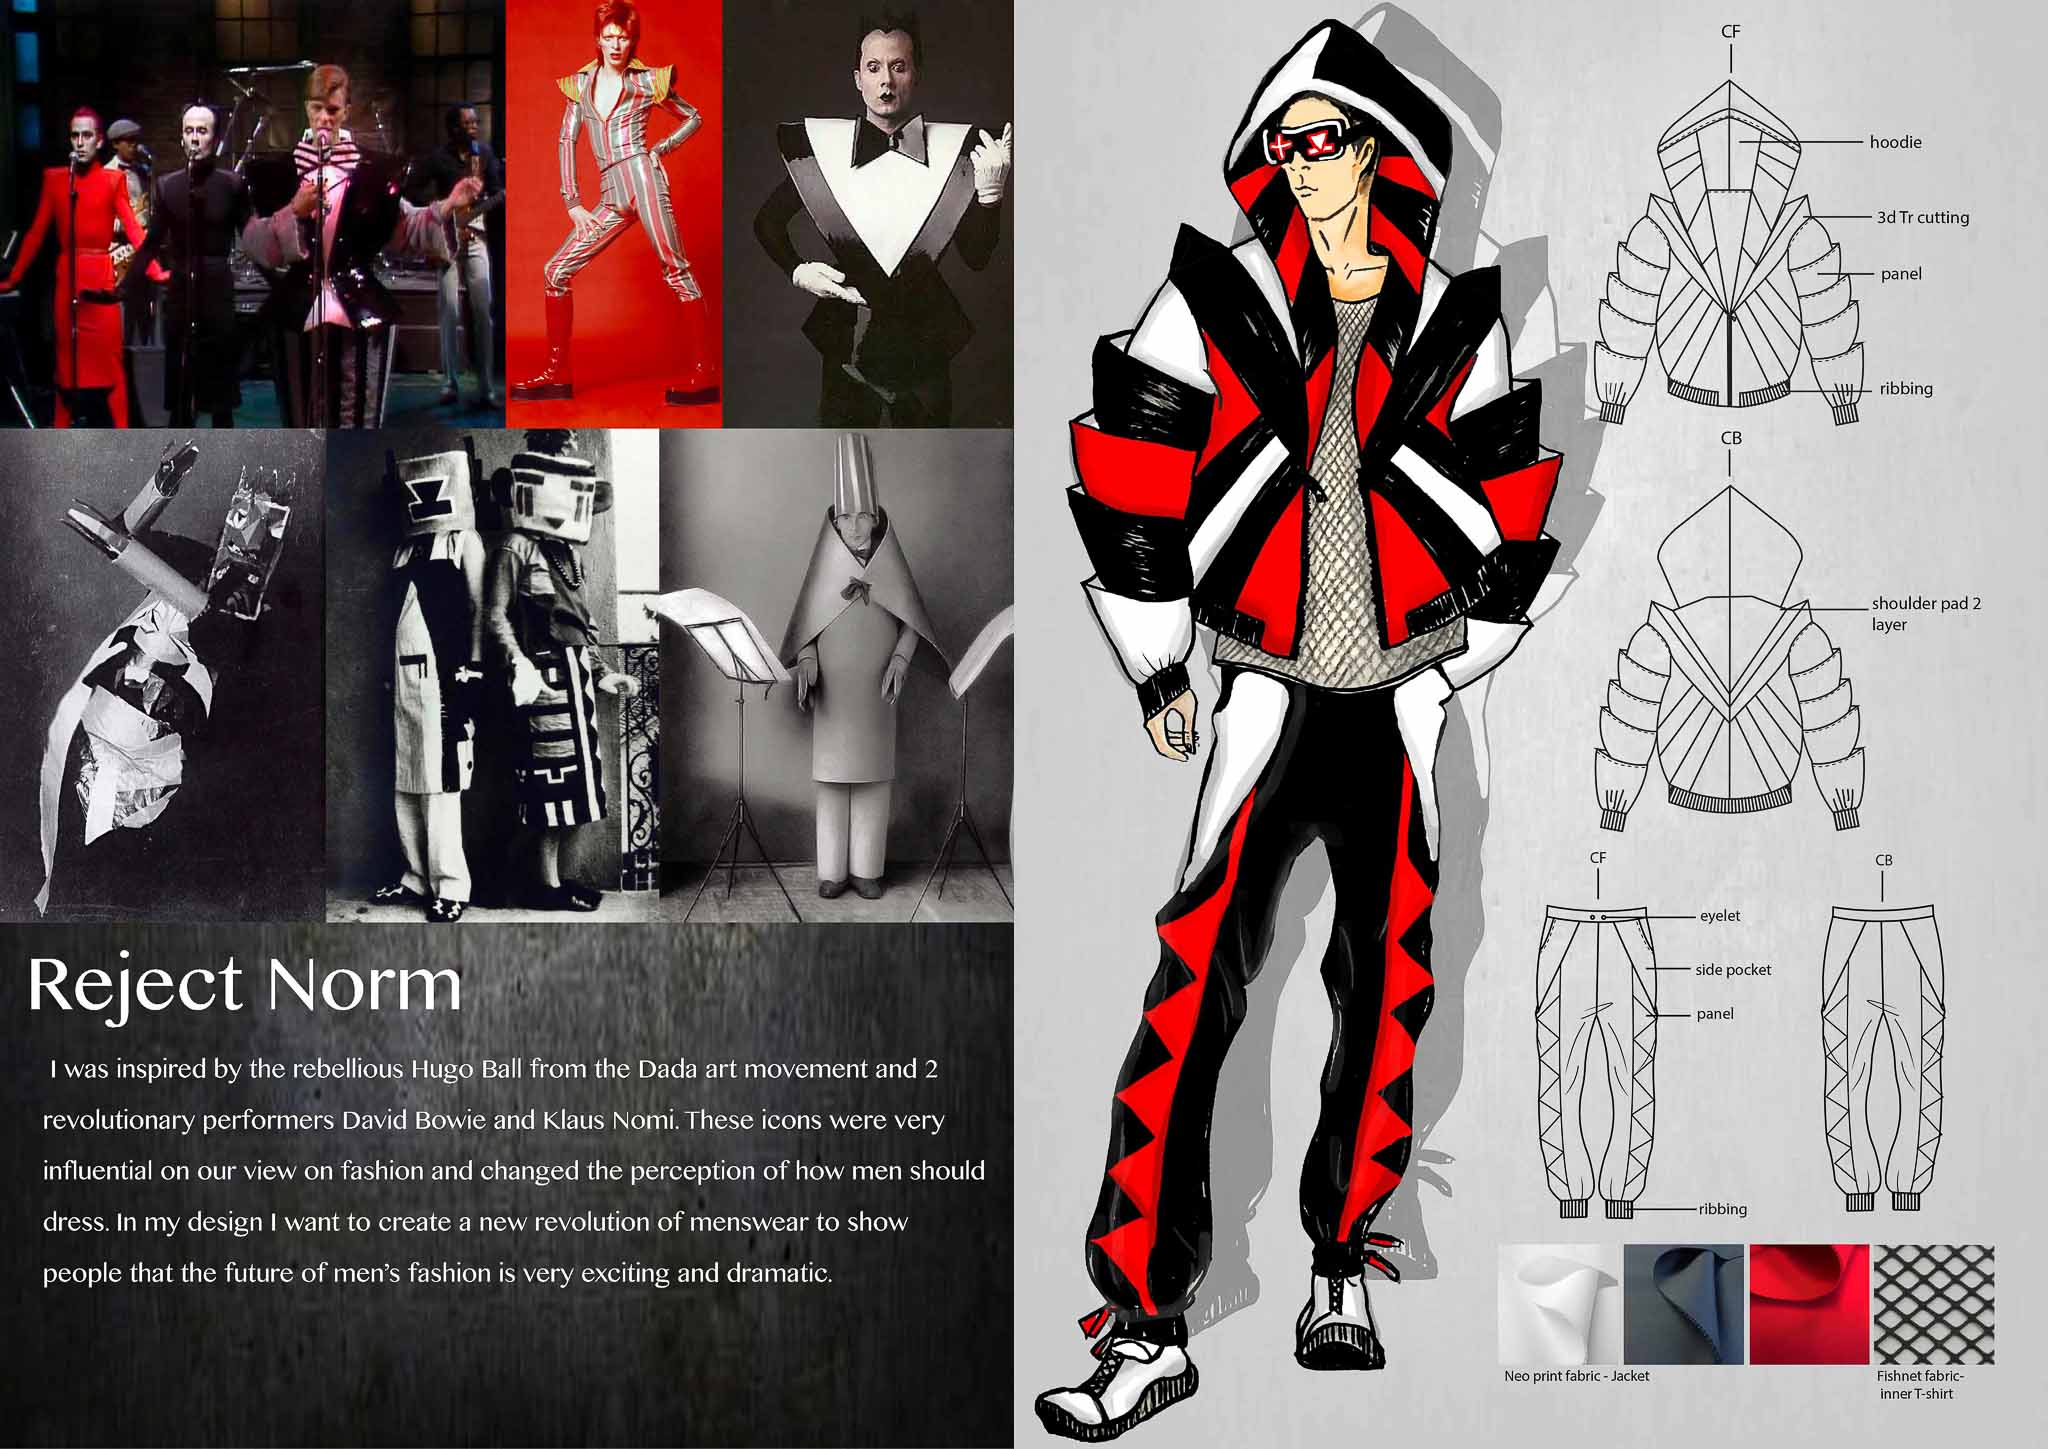 Reject Norm: Yifei Wang, China, Student, Raffles Design Institute Singapore (Create your Revolution)